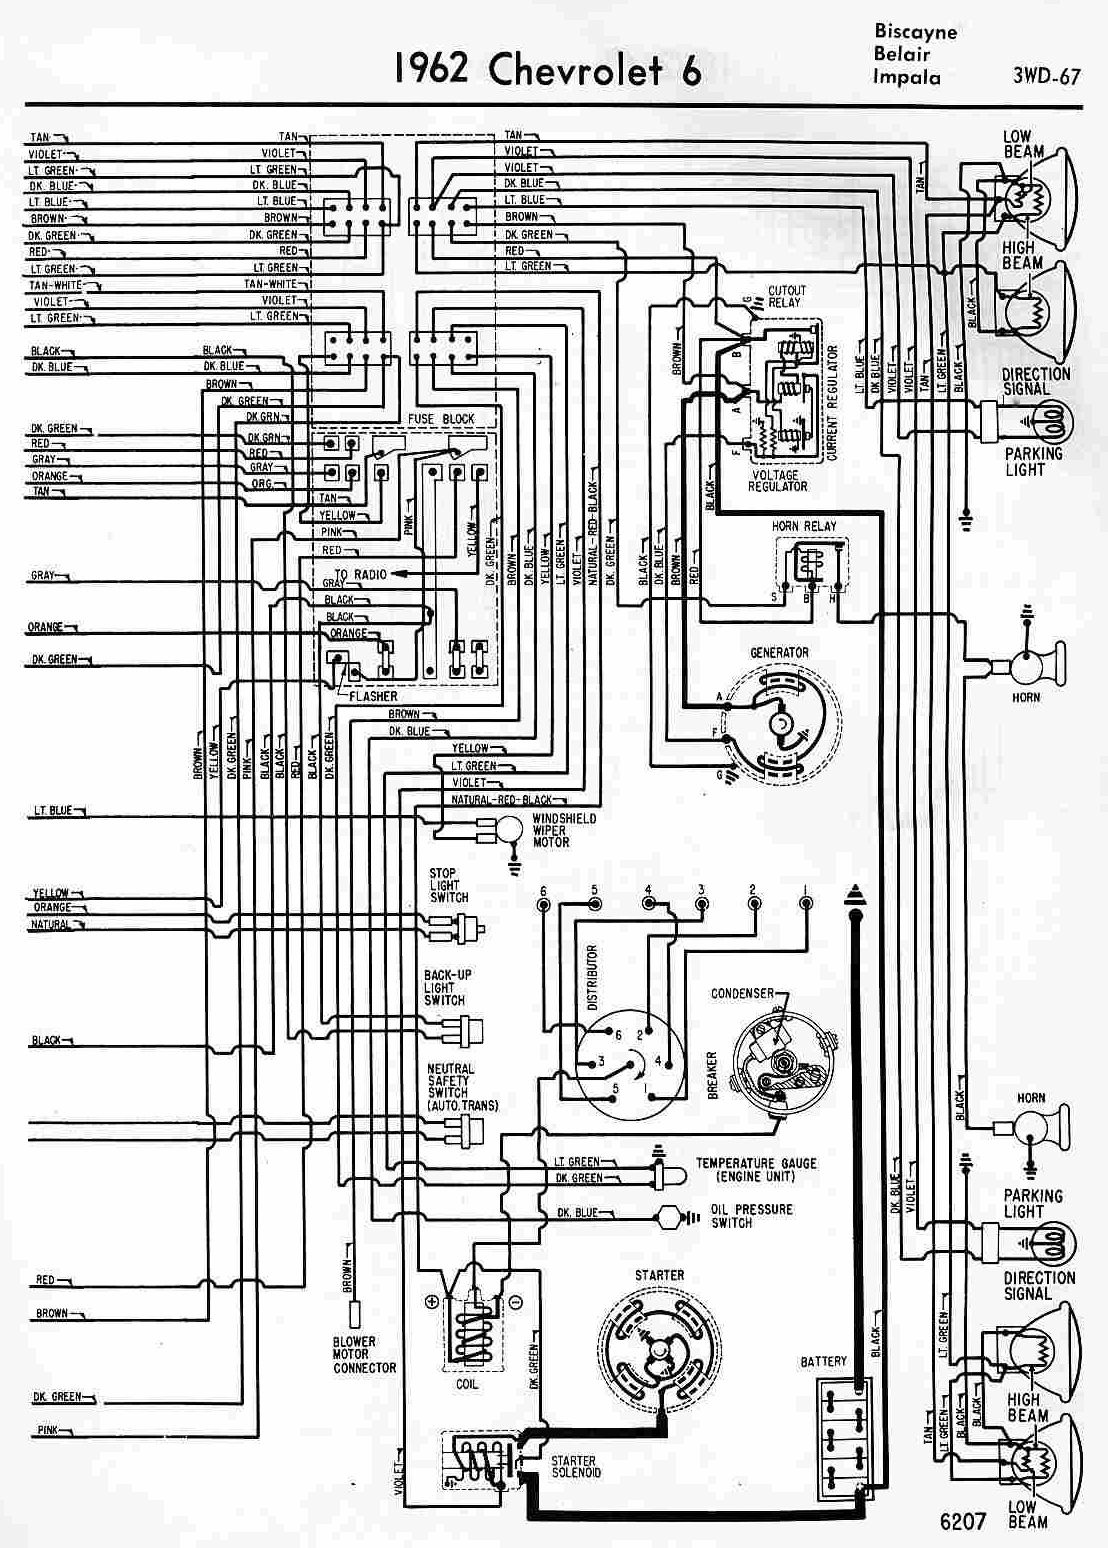 1962 Impala Voltage Regulator Wiring Diagram 44 2003 Stock Radio Chevrolet 6 Biscayne252c Belair And